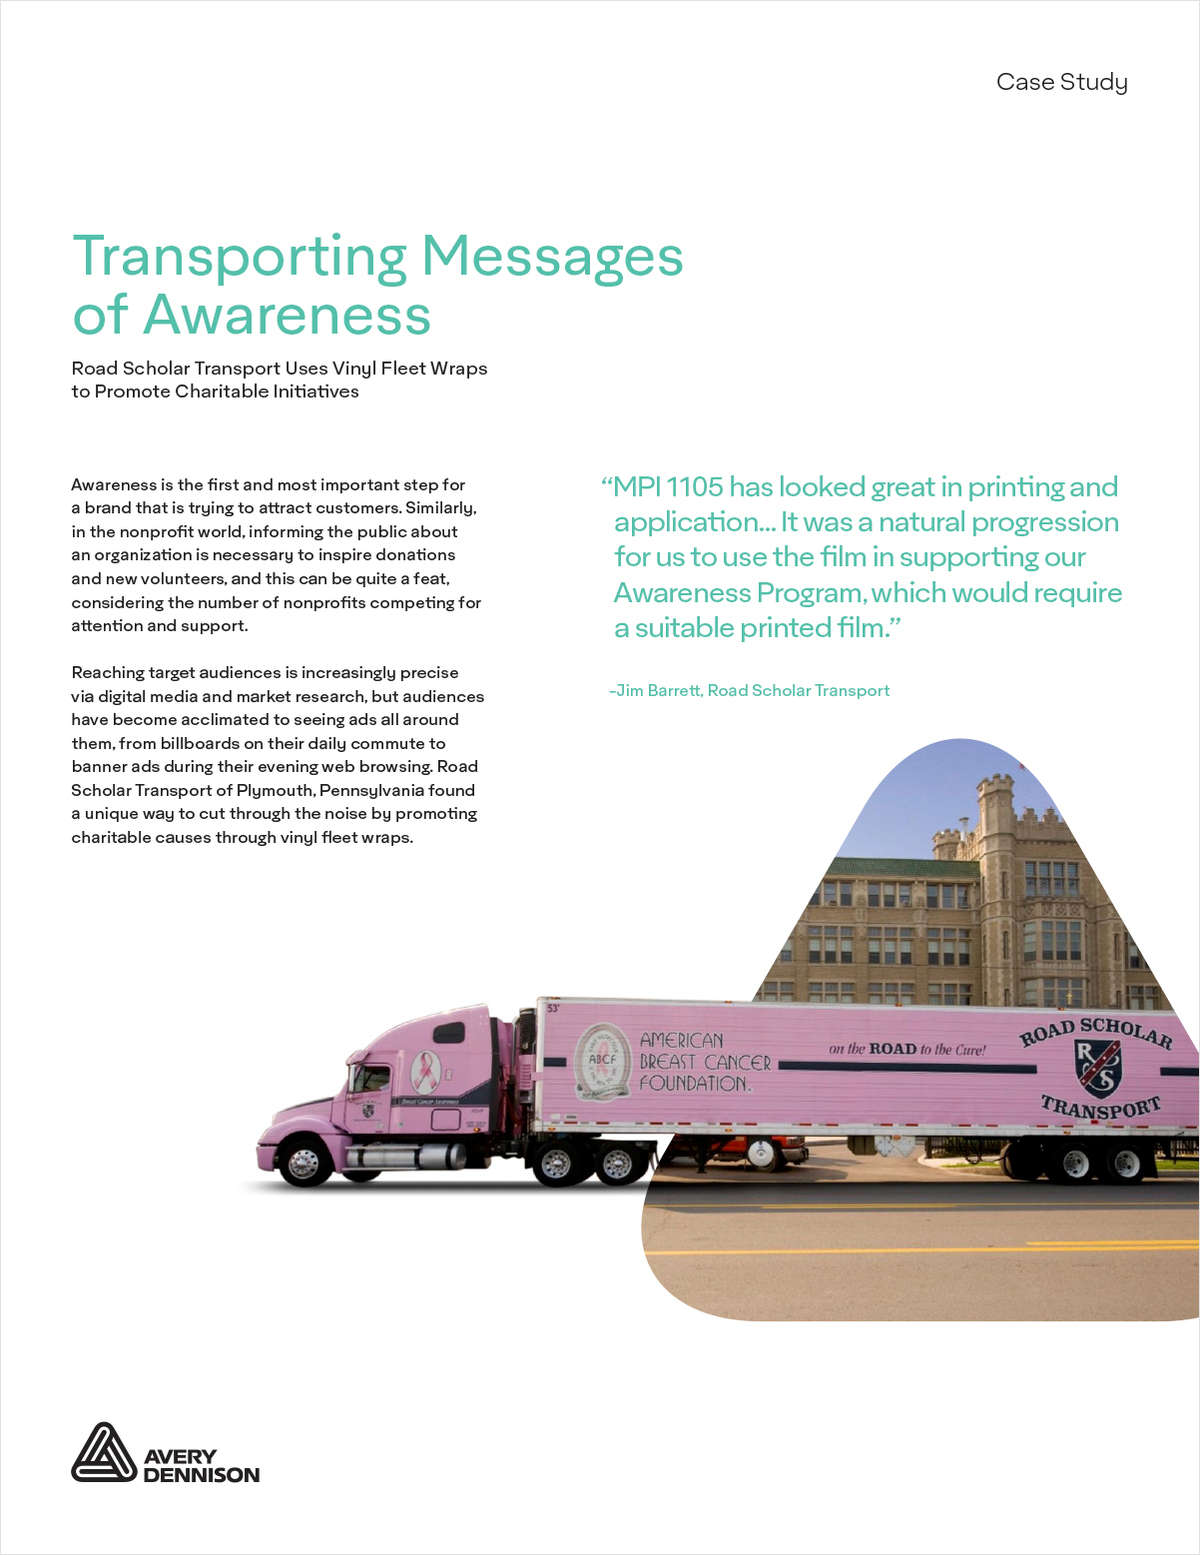 Transporting Messages of Awareness: Fleet Company Uses Vinyl Wraps to Promote Charitable Initiatives